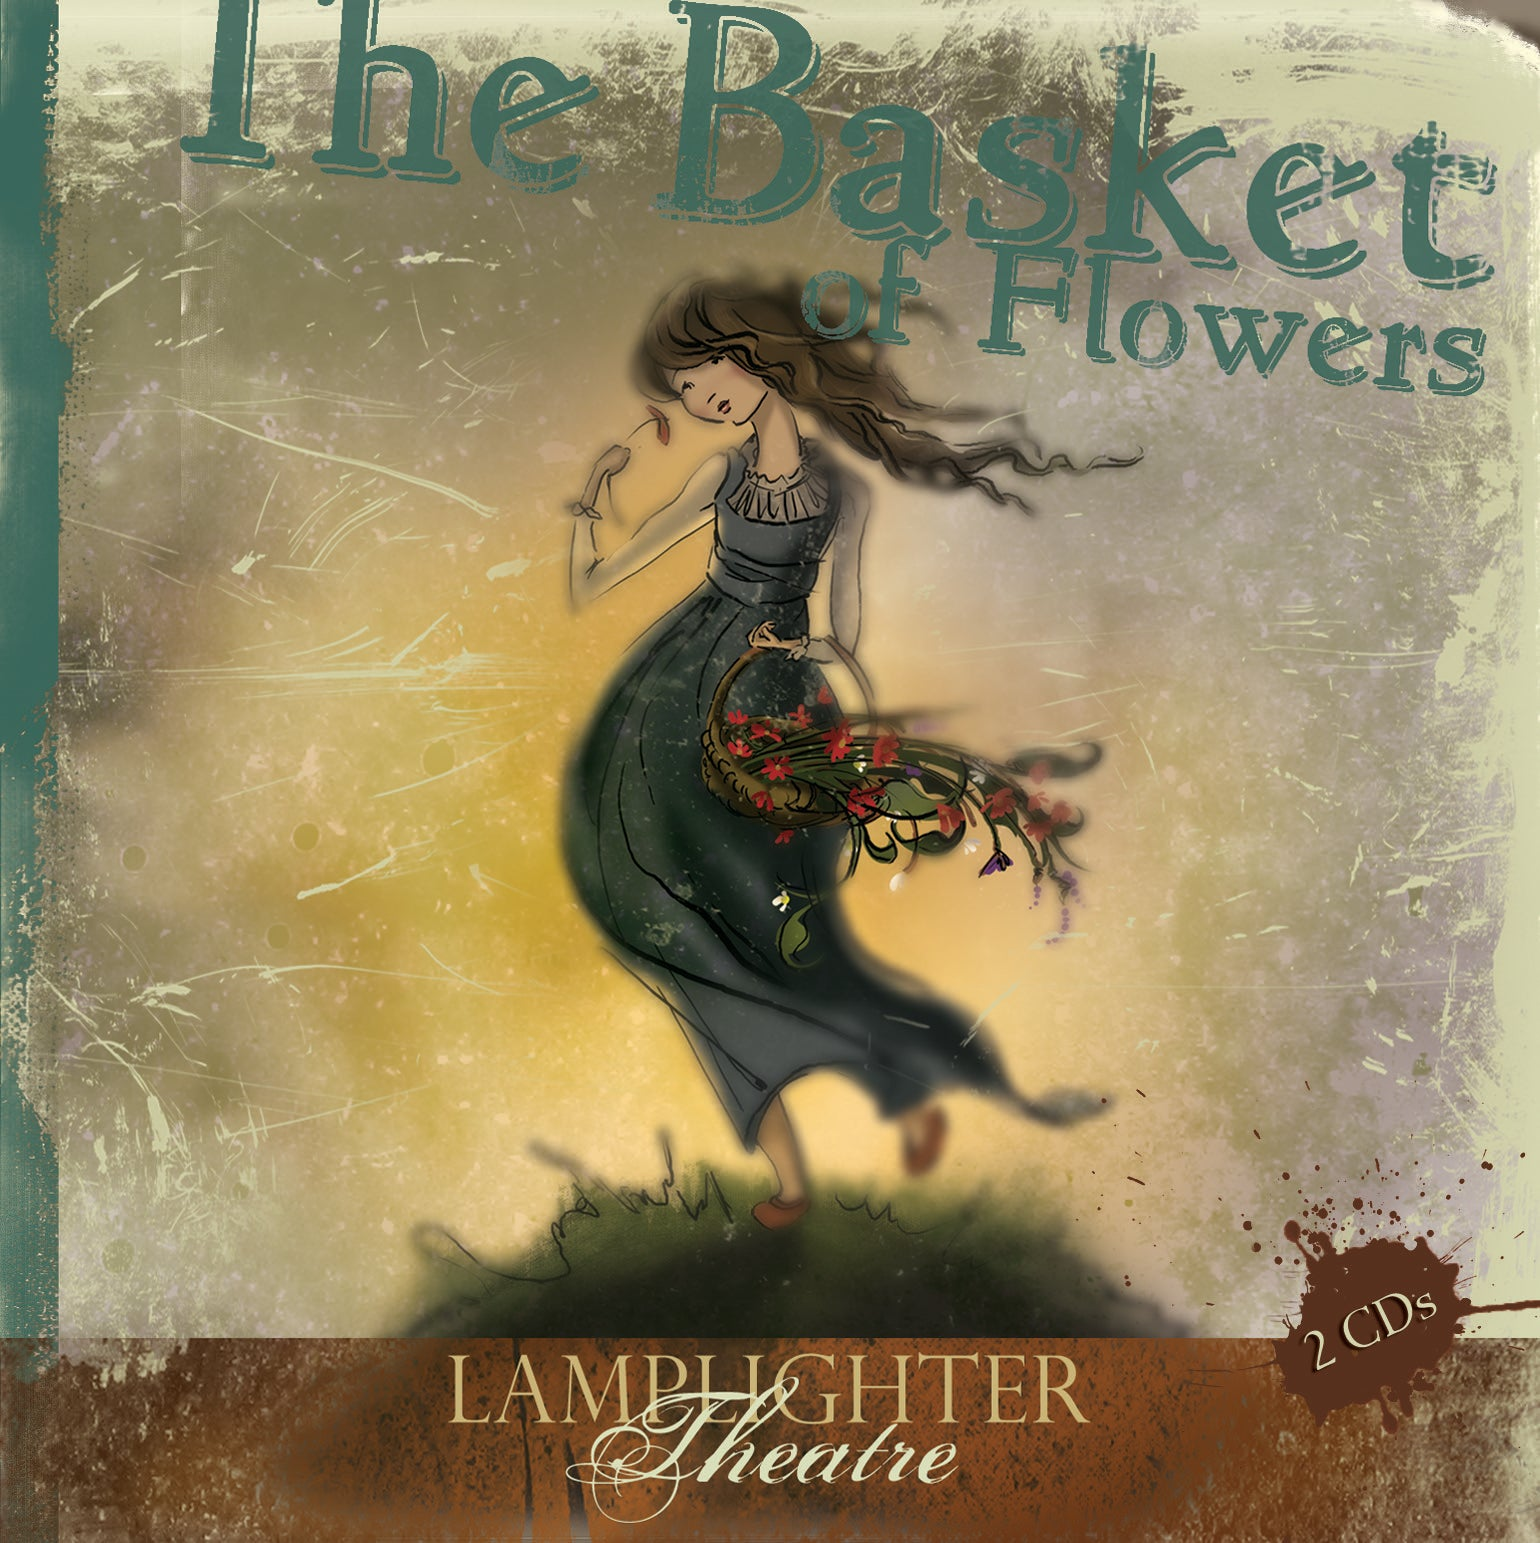 The Basket of Flowers - Lamplighter Theatre